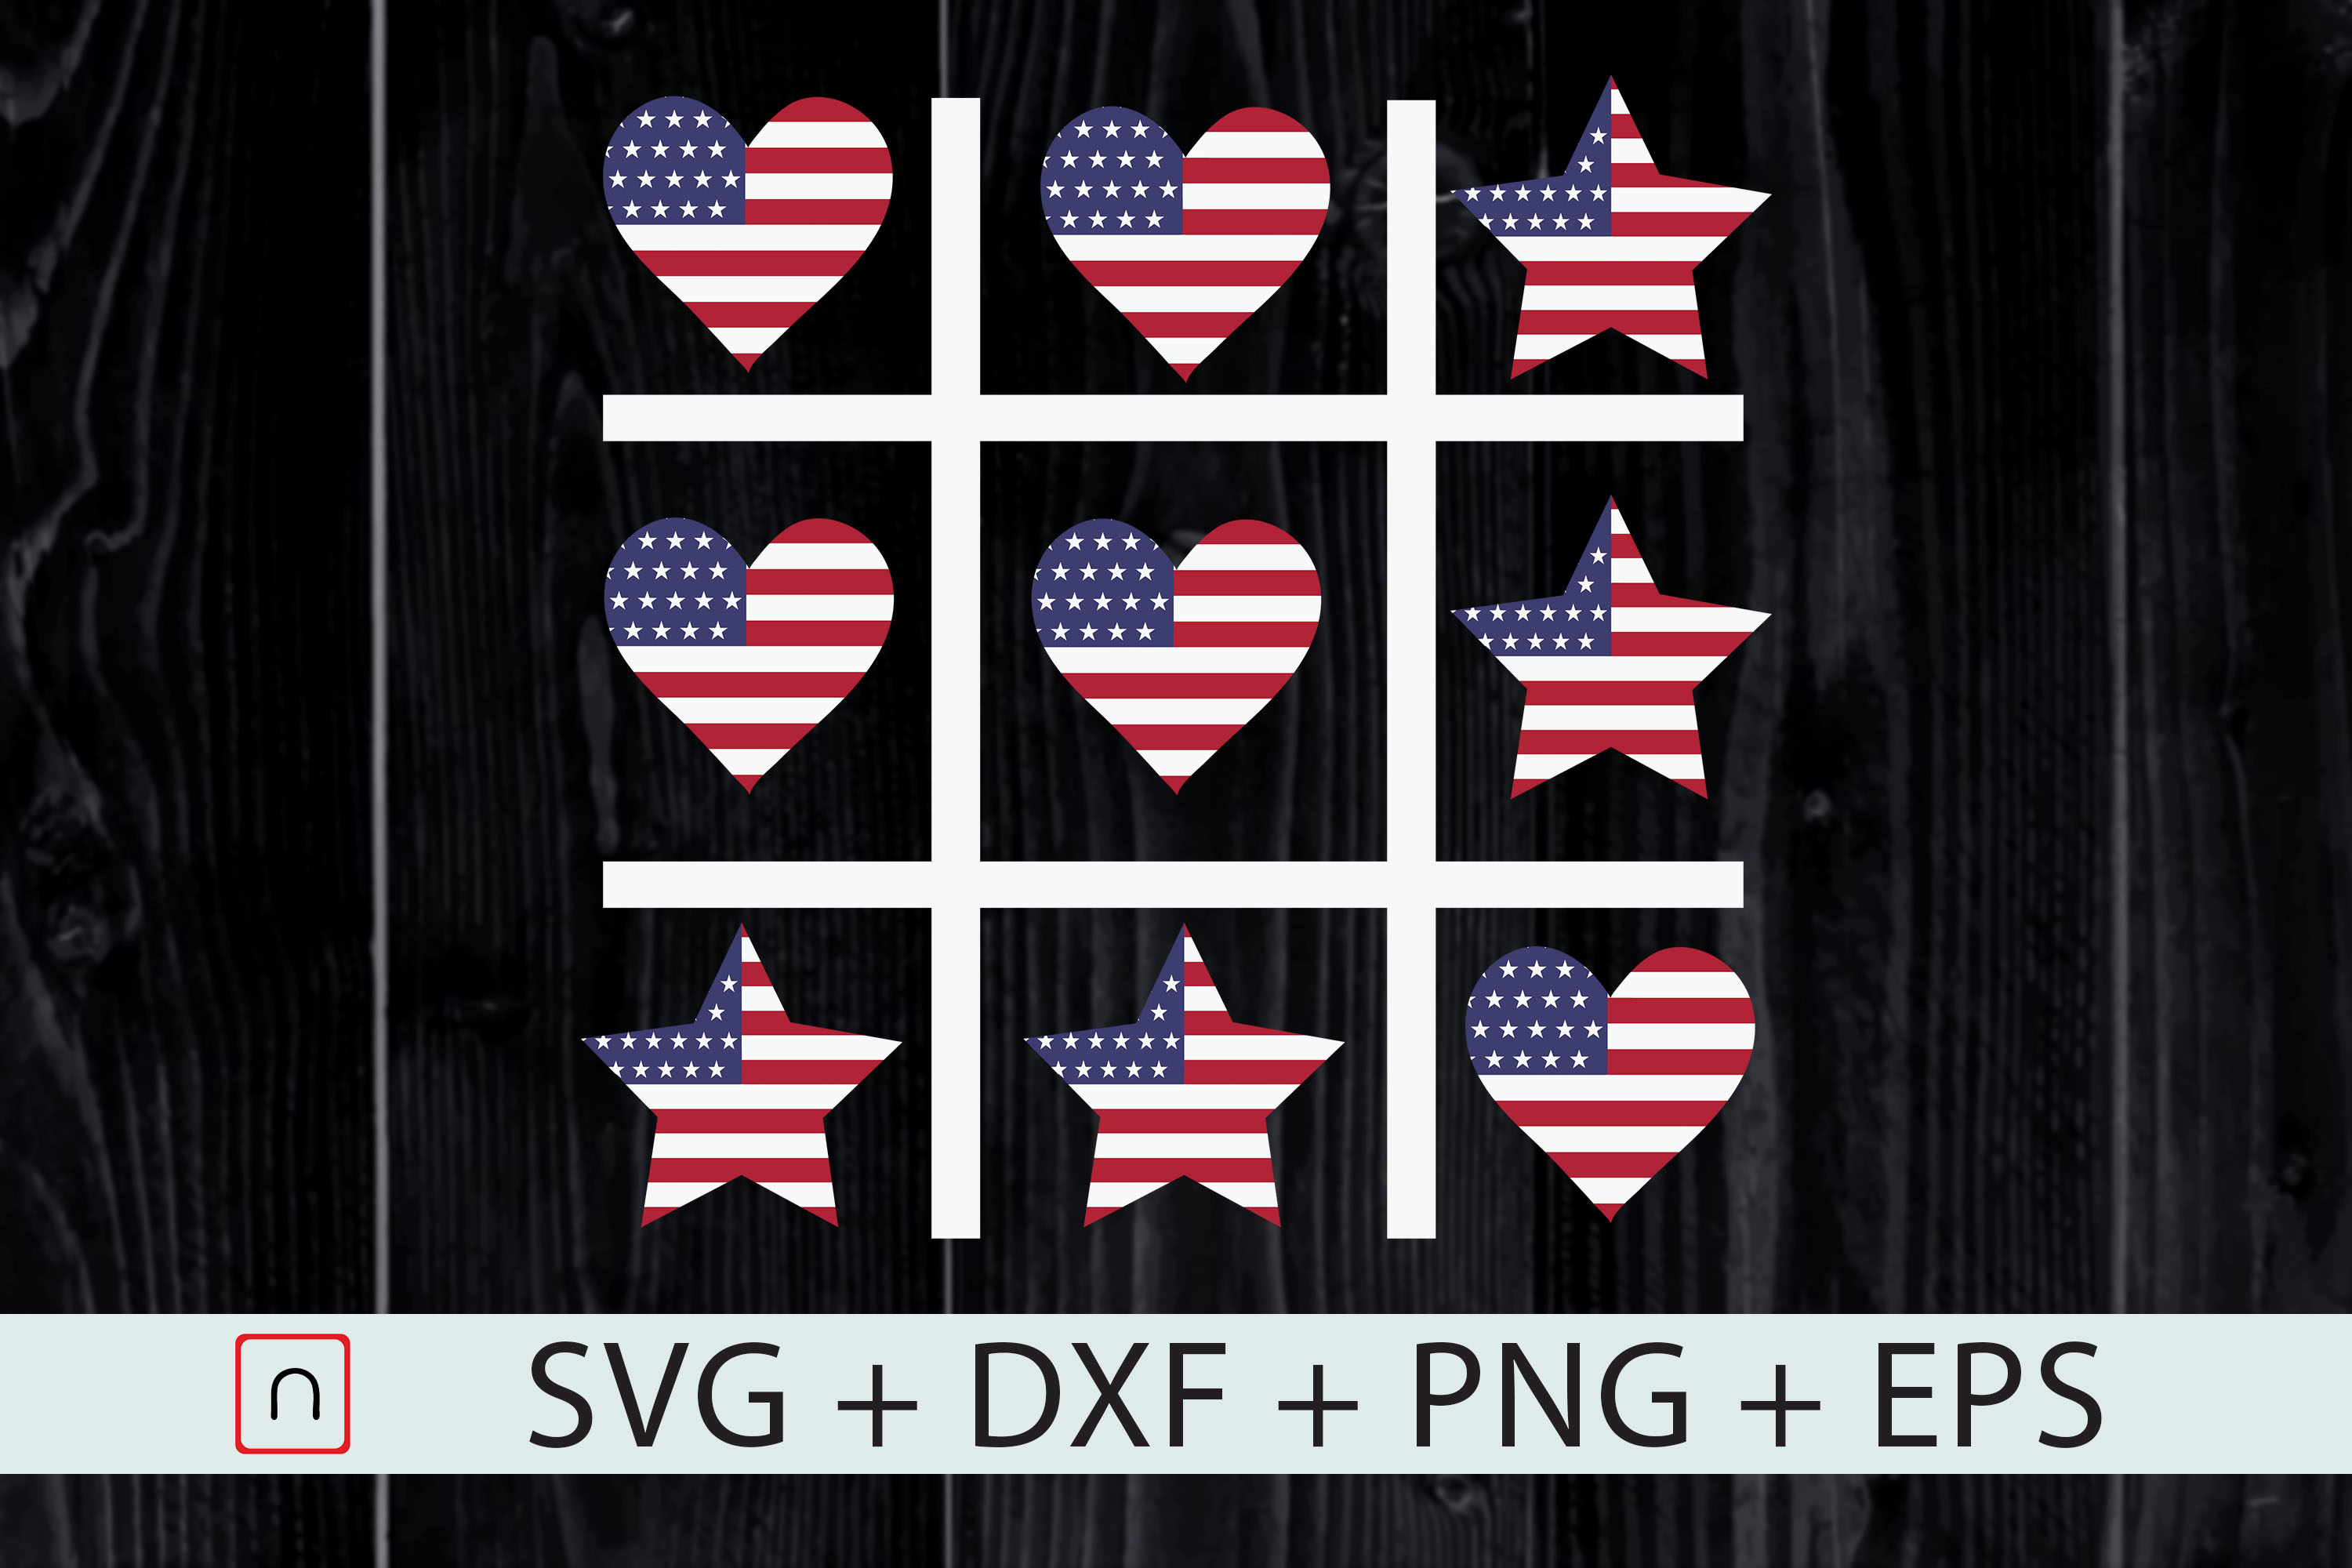 Download Free 4th Of July Tic Tac Toe Game Patriotic Graphic By Novalia for Cricut Explore, Silhouette and other cutting machines.